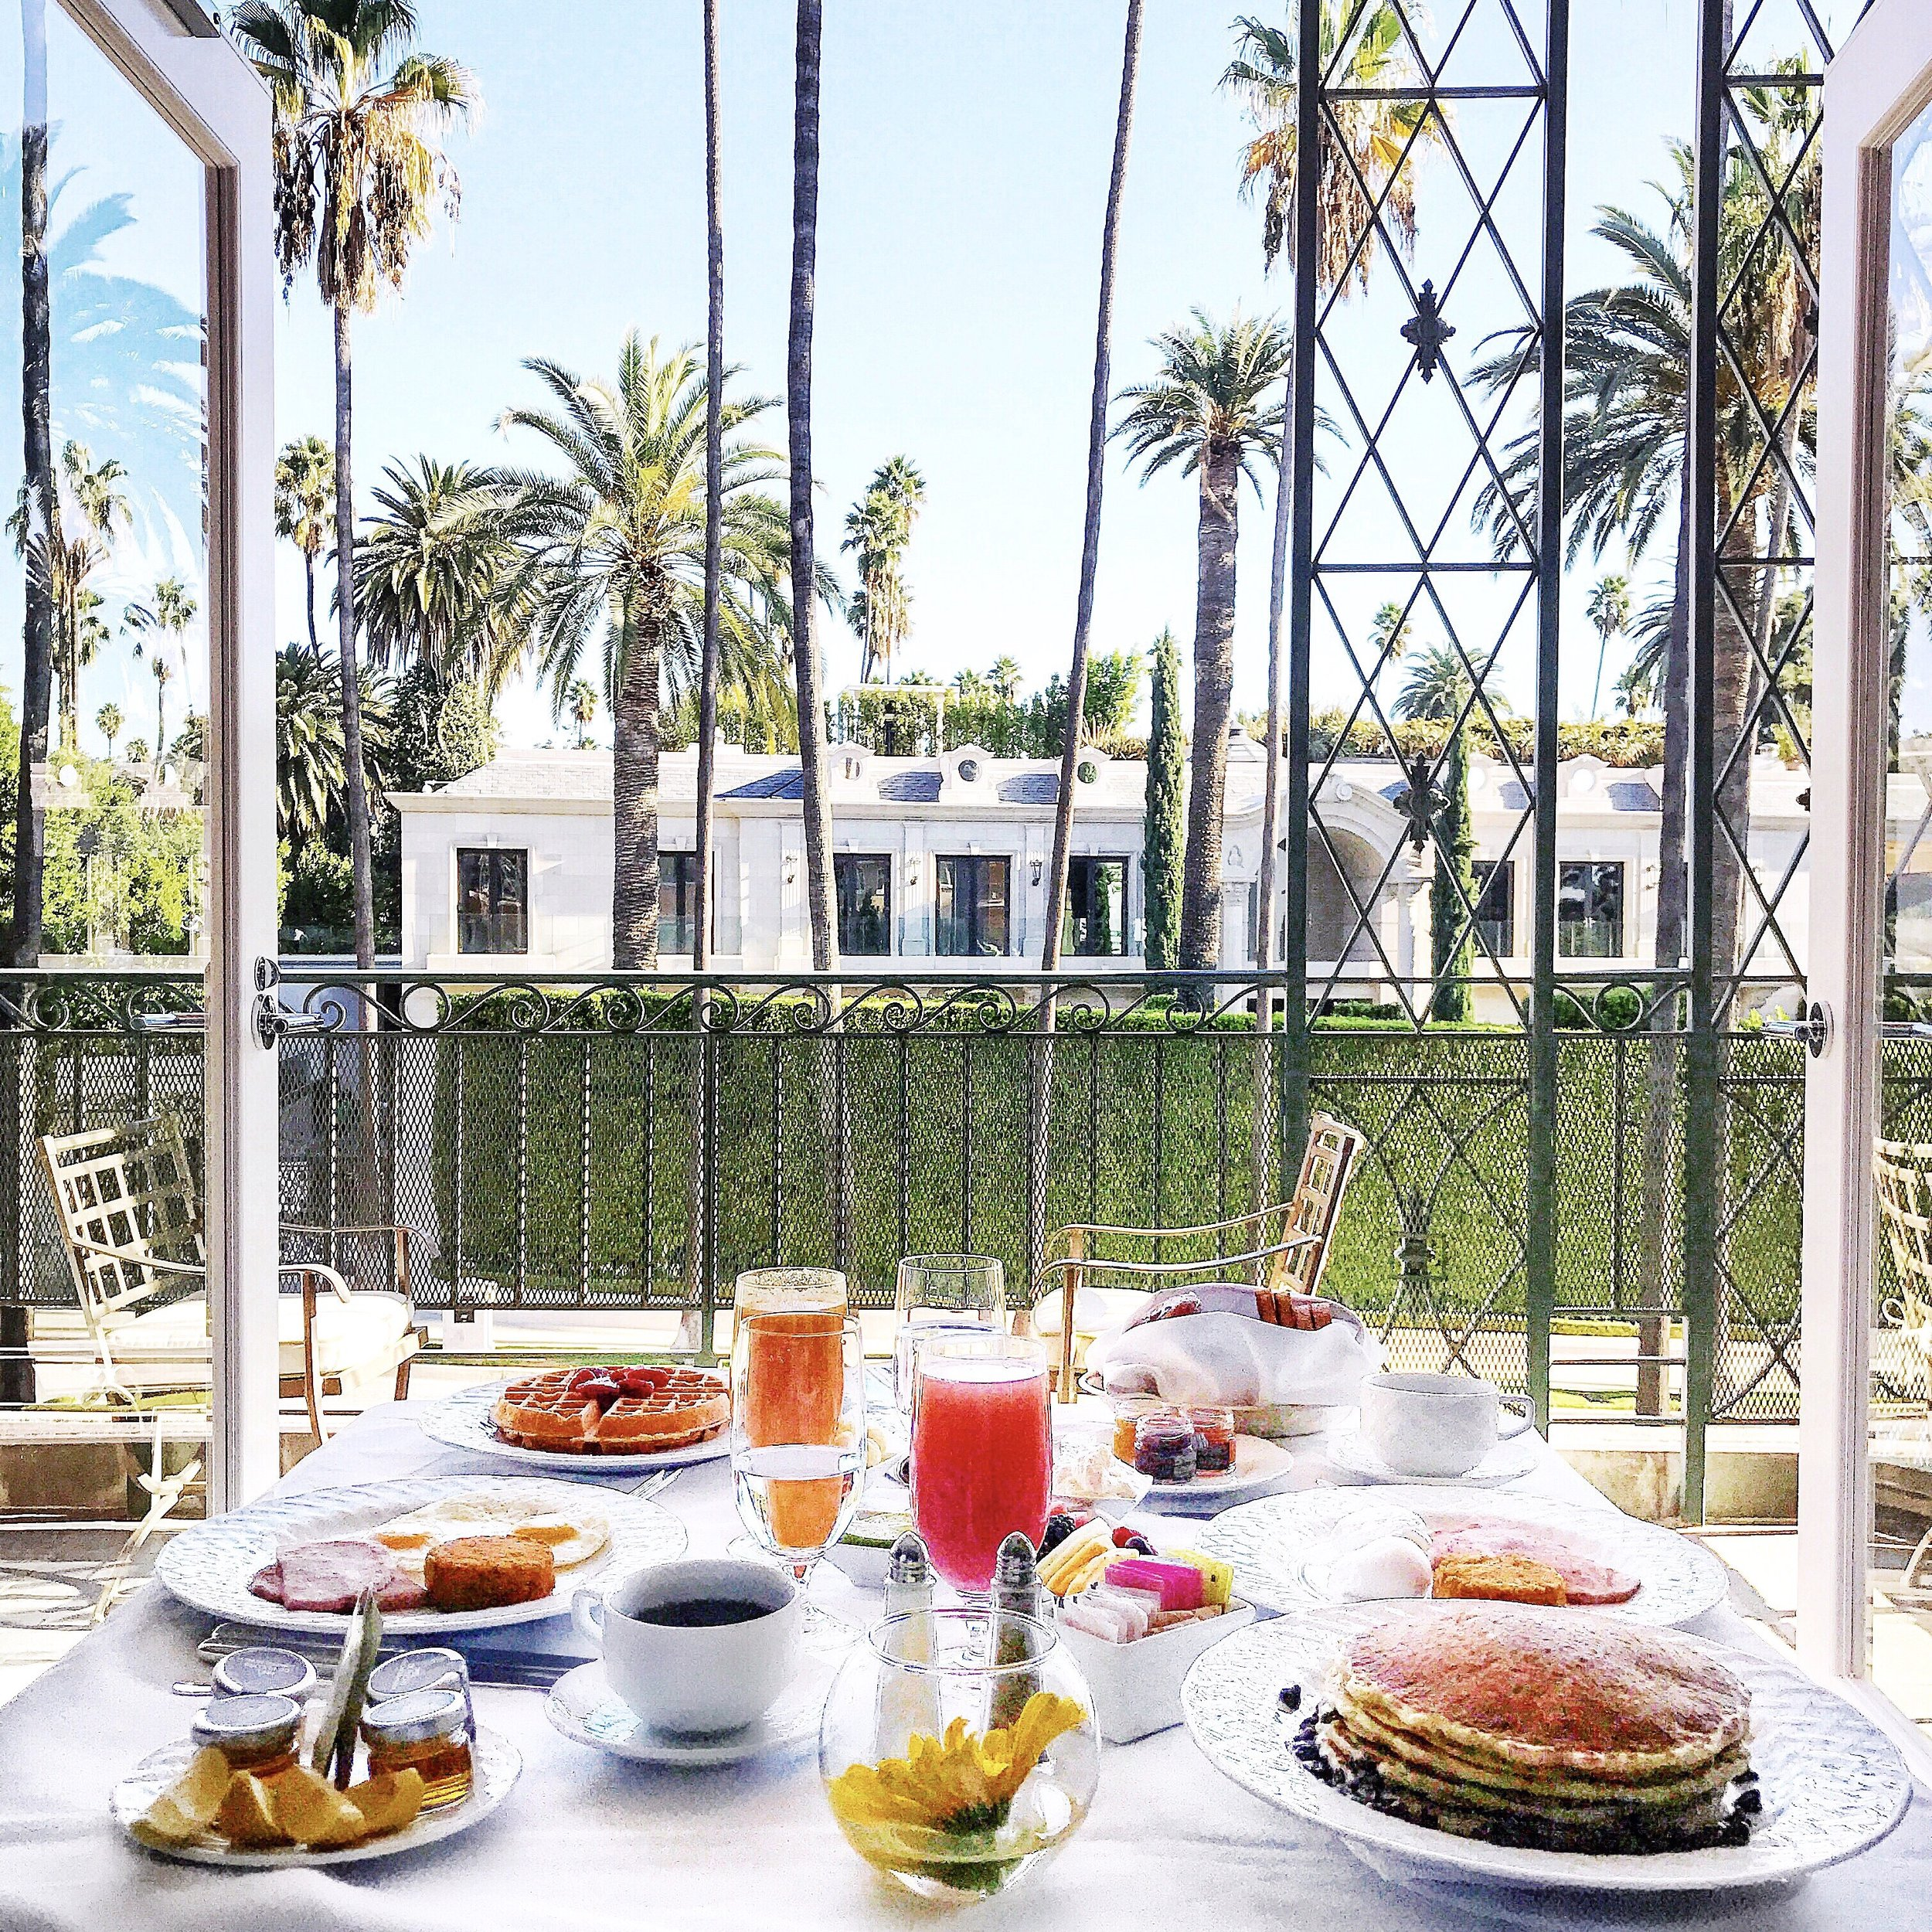 Our breakfast view